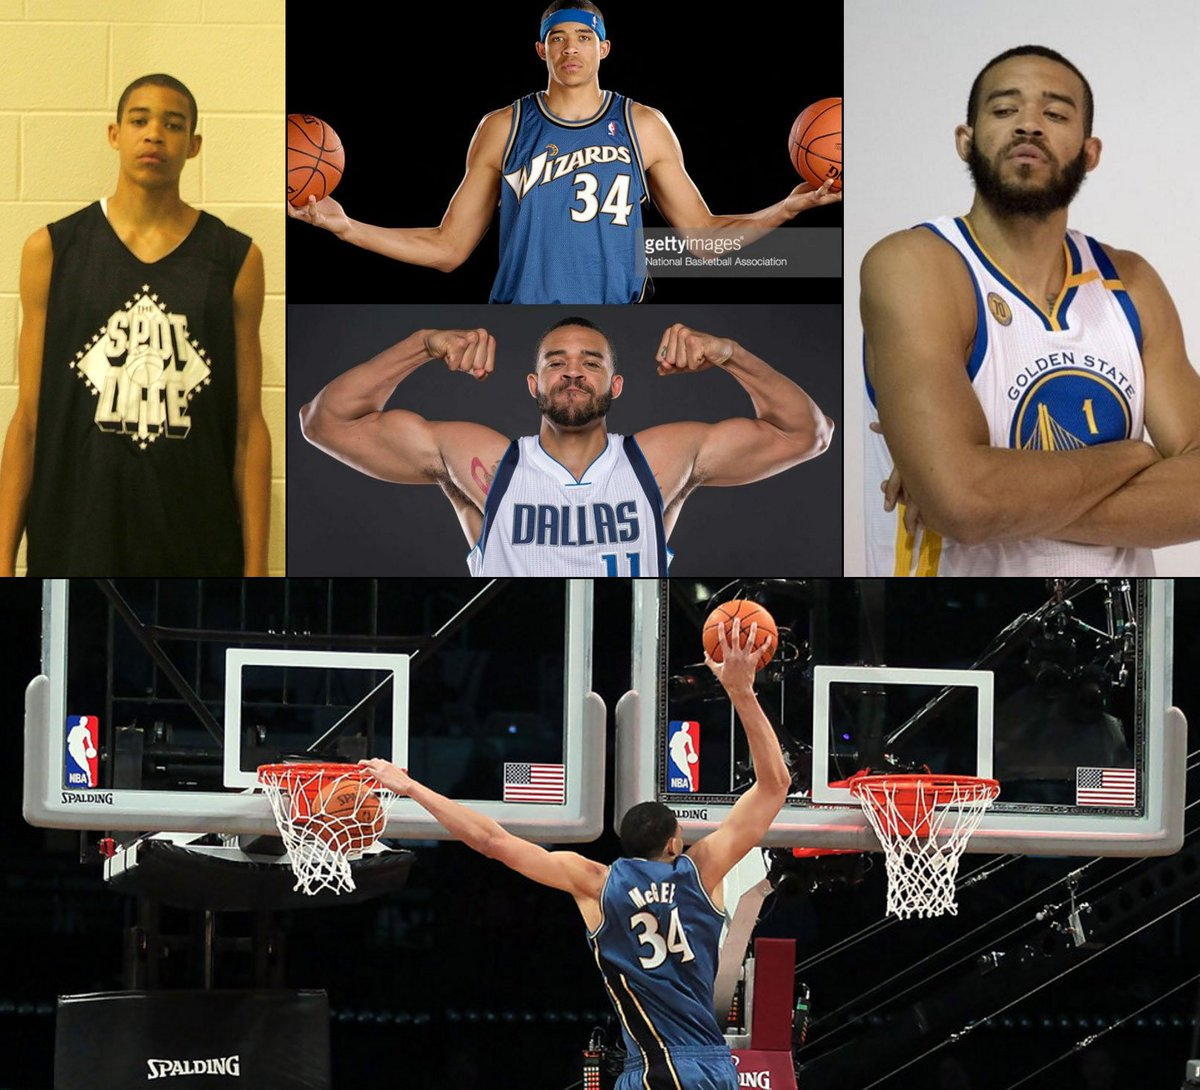 Happy 30th Birthday to JaVale McGee! bit.ly/2jCrTjA